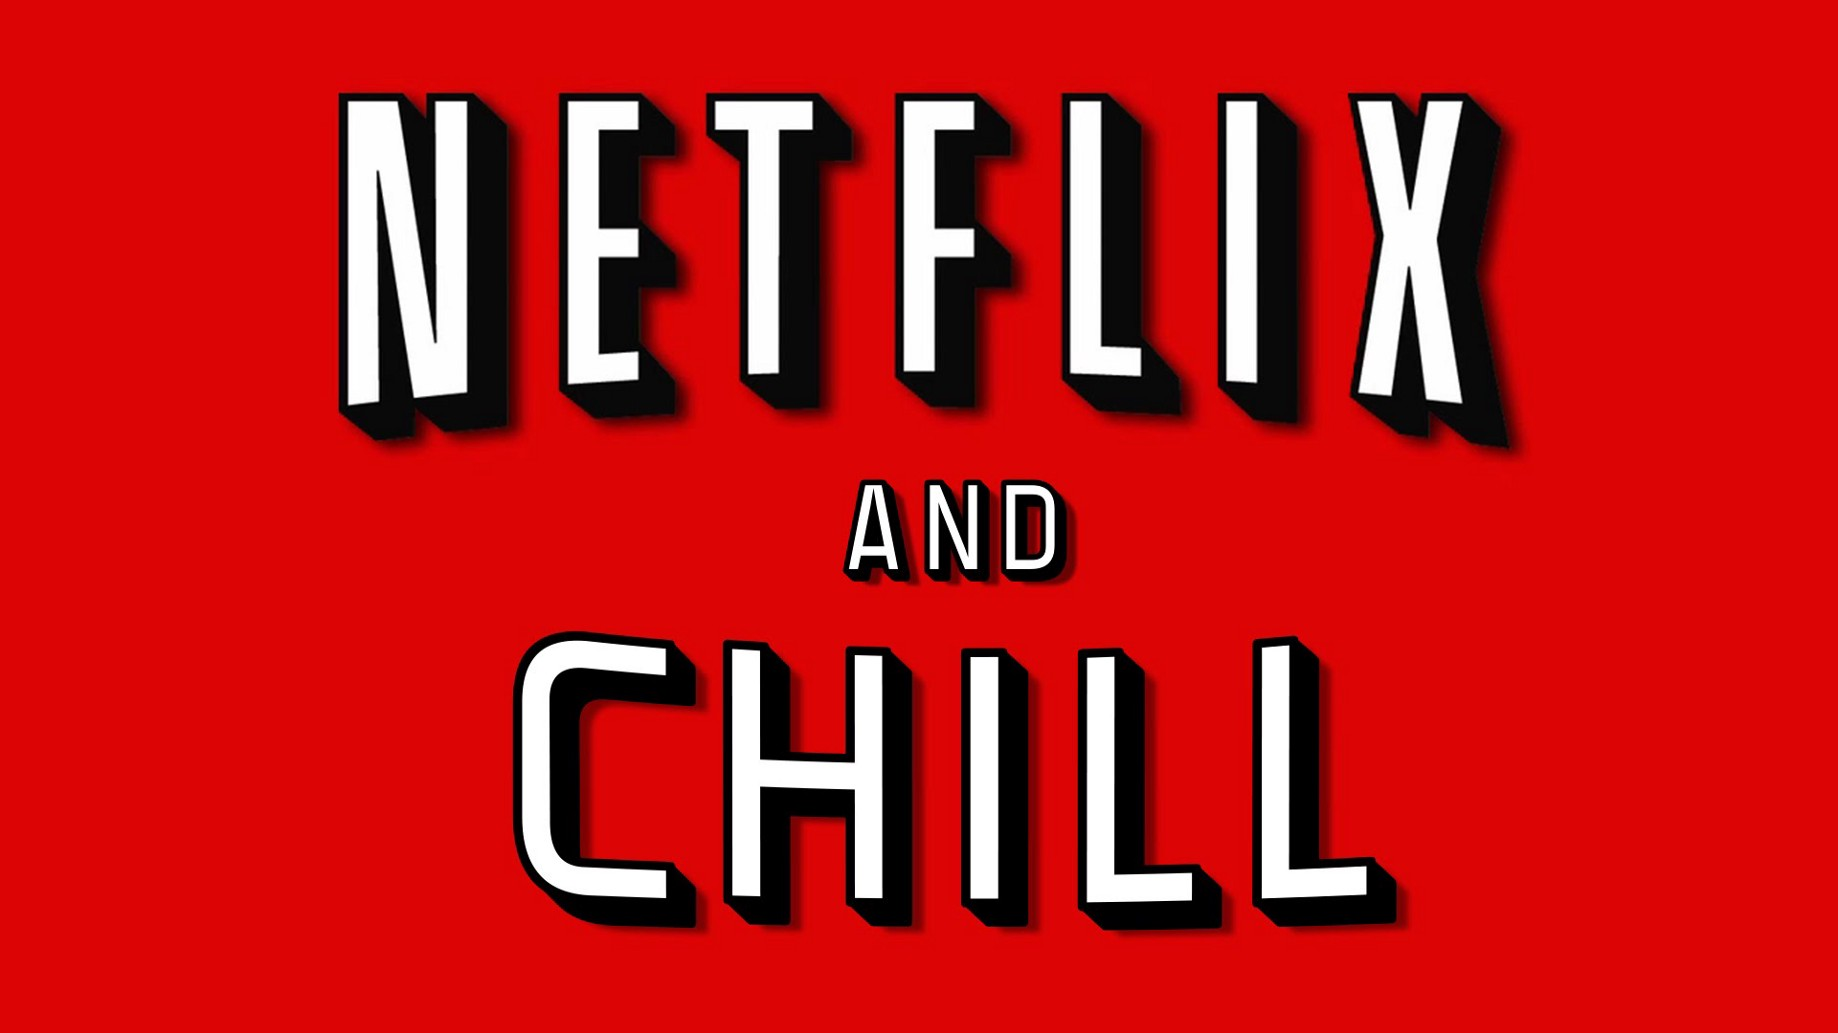 Netflix And Chill - Human Parts